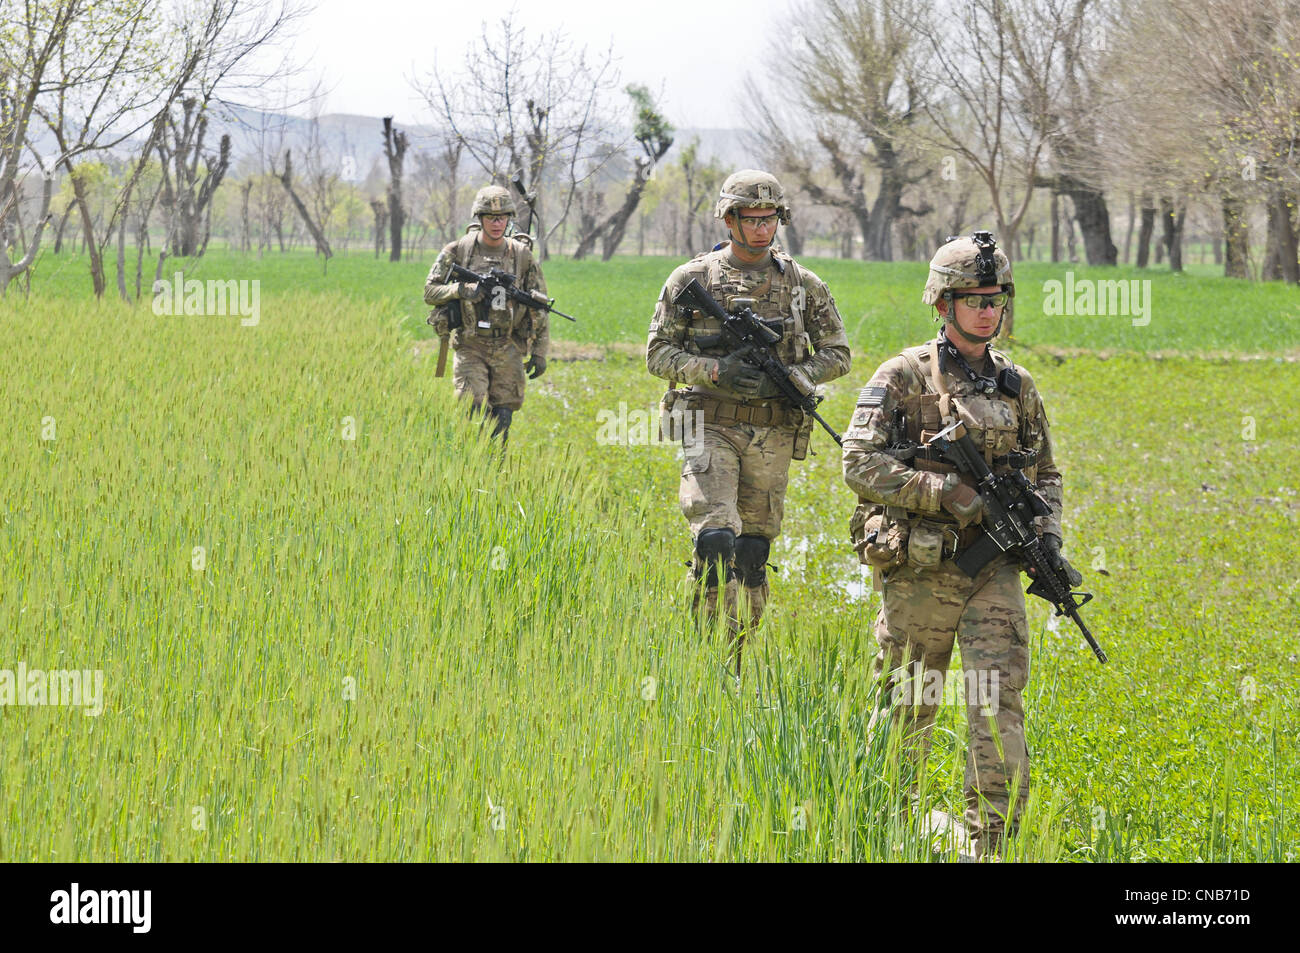 US Army soldiers patrol a field near the village March 30, 2012 in Gorchek, Afghanistan. - Stock Image